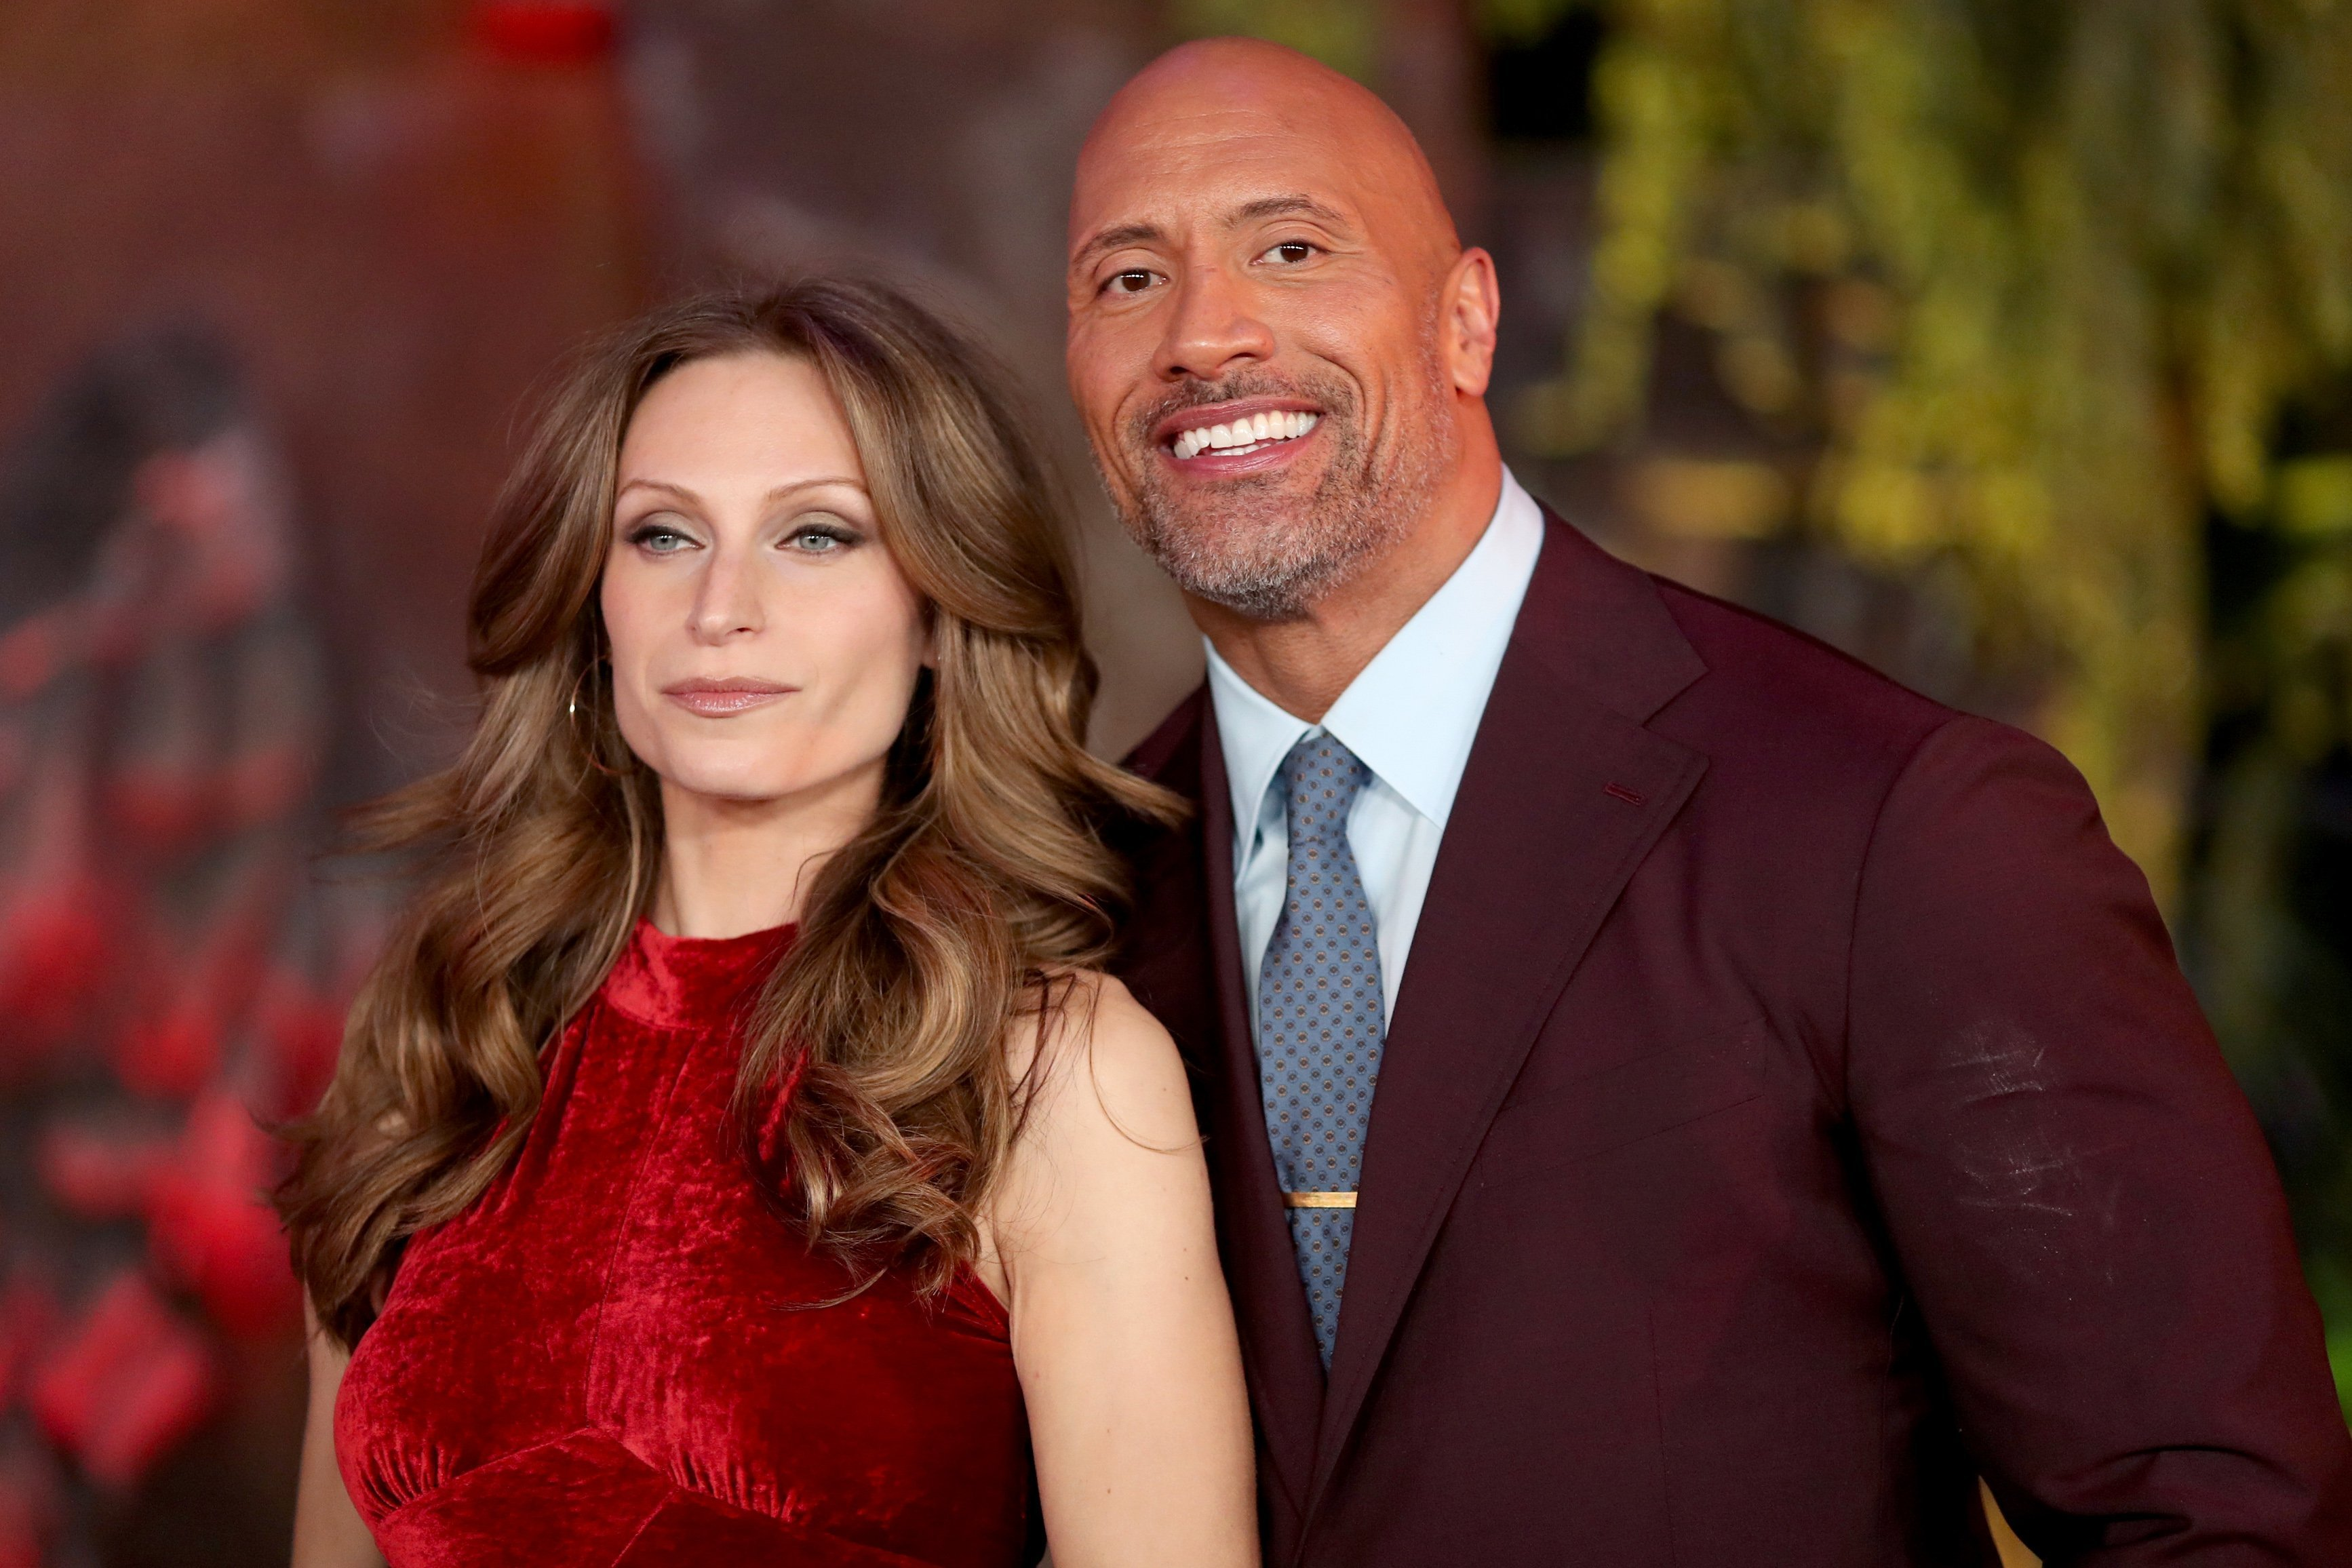 """Lauren Hashian and Dwayne Johnson attend the premiere of """"Jumanji: Welcome To The Jungle"""" on December 11, 2017 in Hollywood, California. 